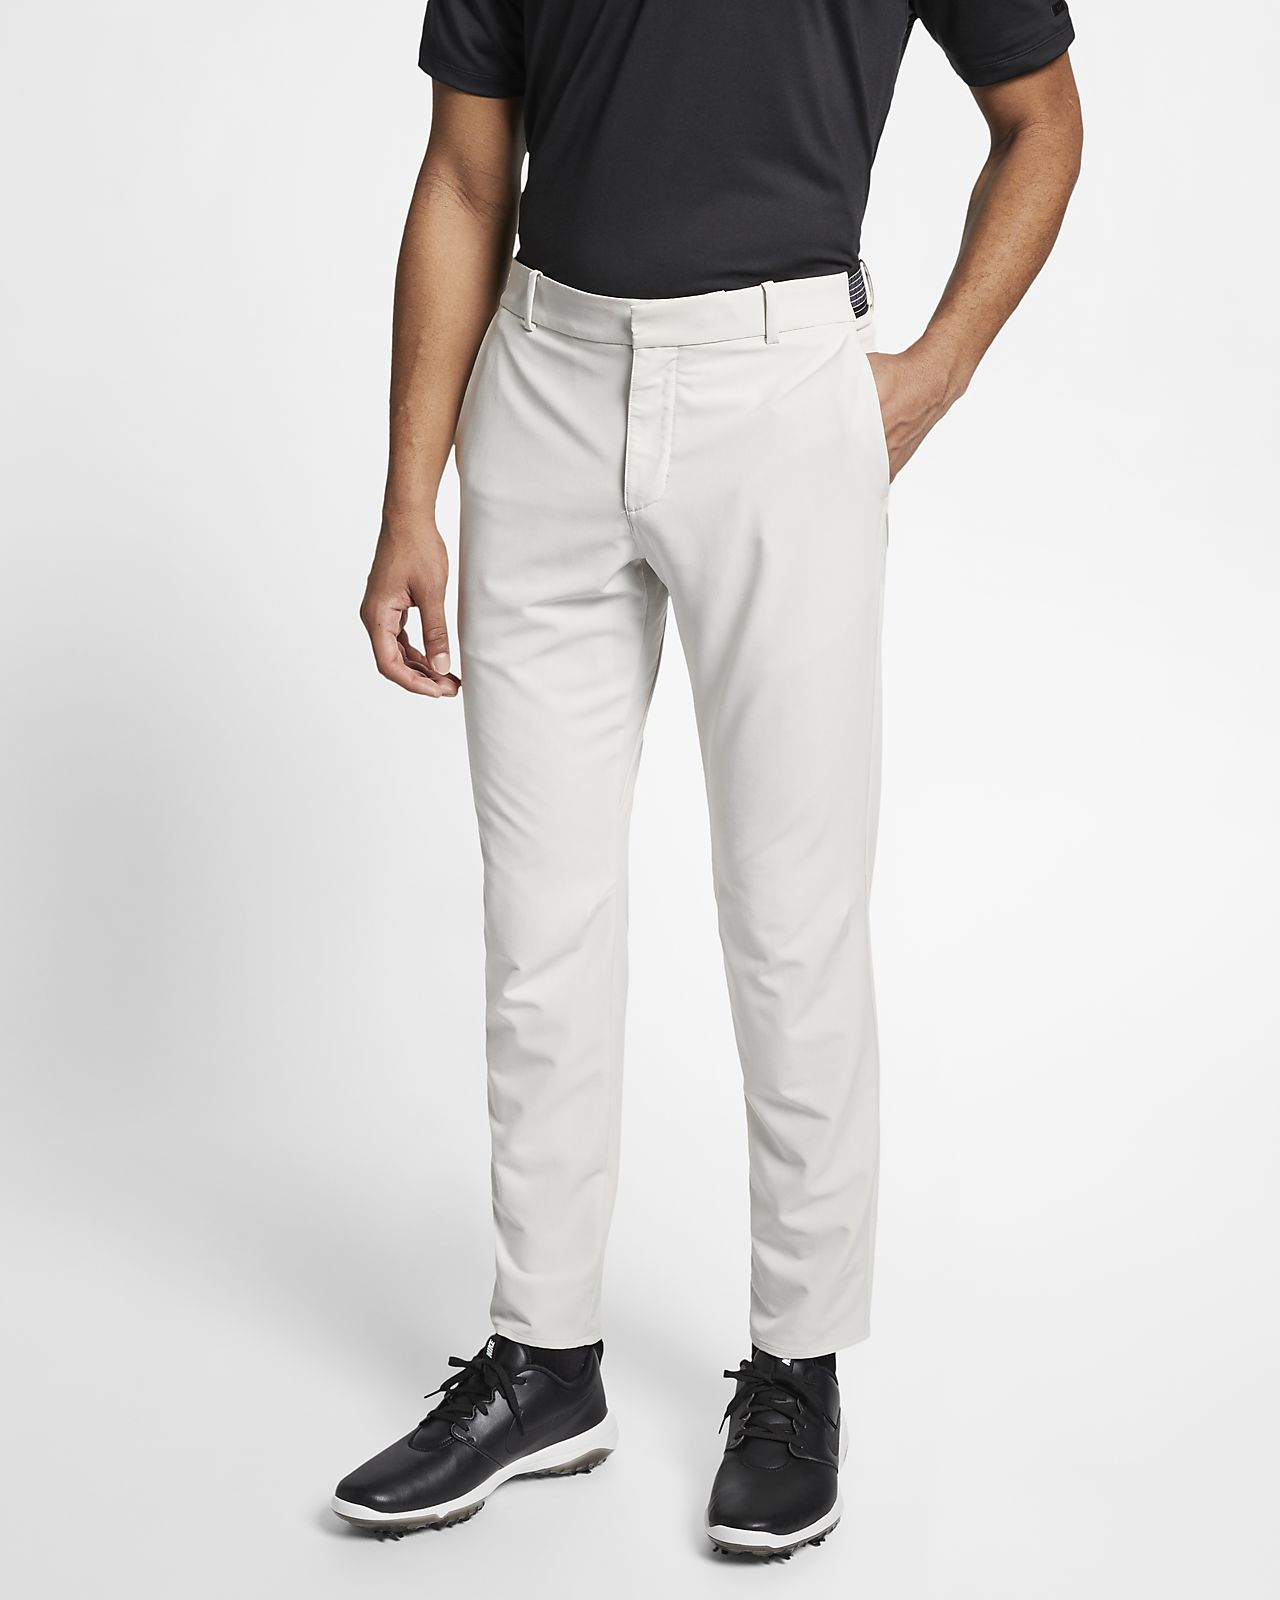 Nike Flex Men's Slim-Fit Golf Trousers